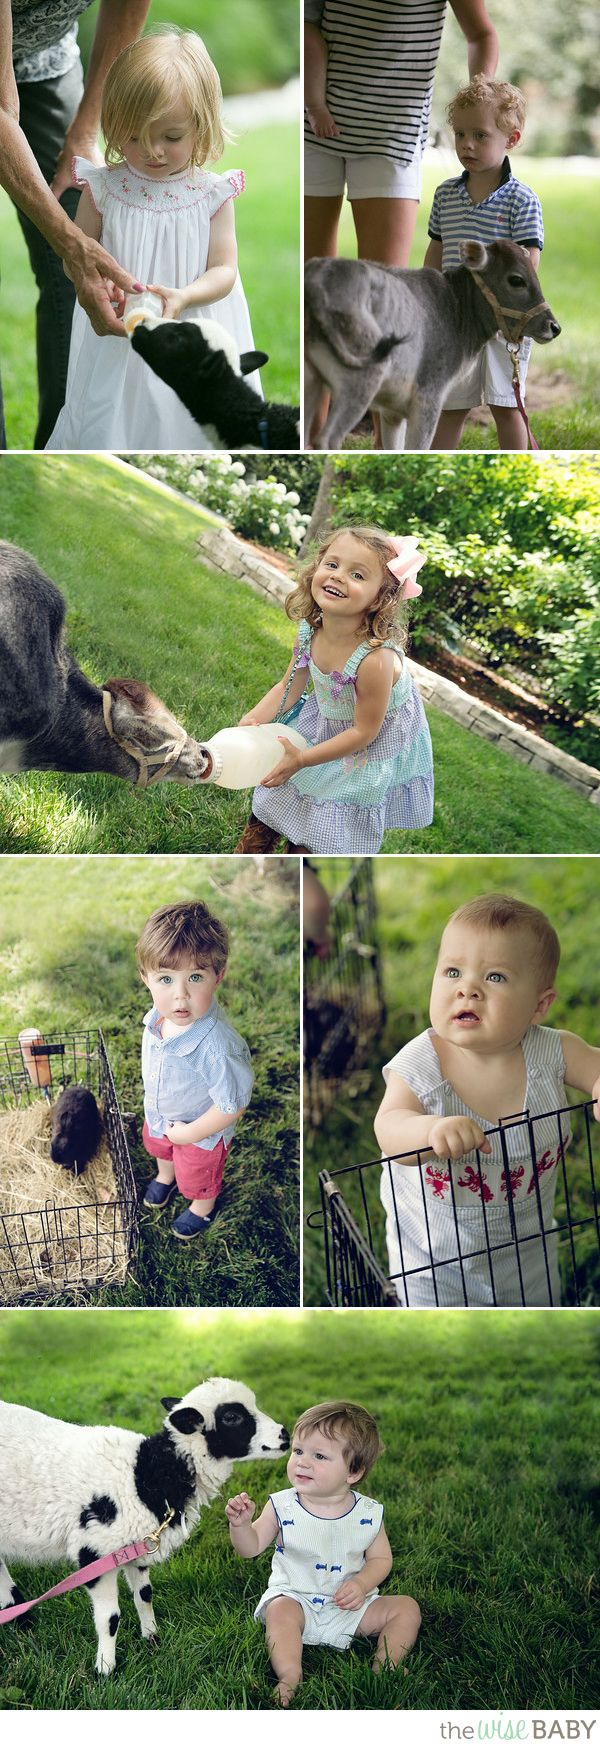 Best 25 Petting zoo ideas on Pinterest Petting zoo party Farm